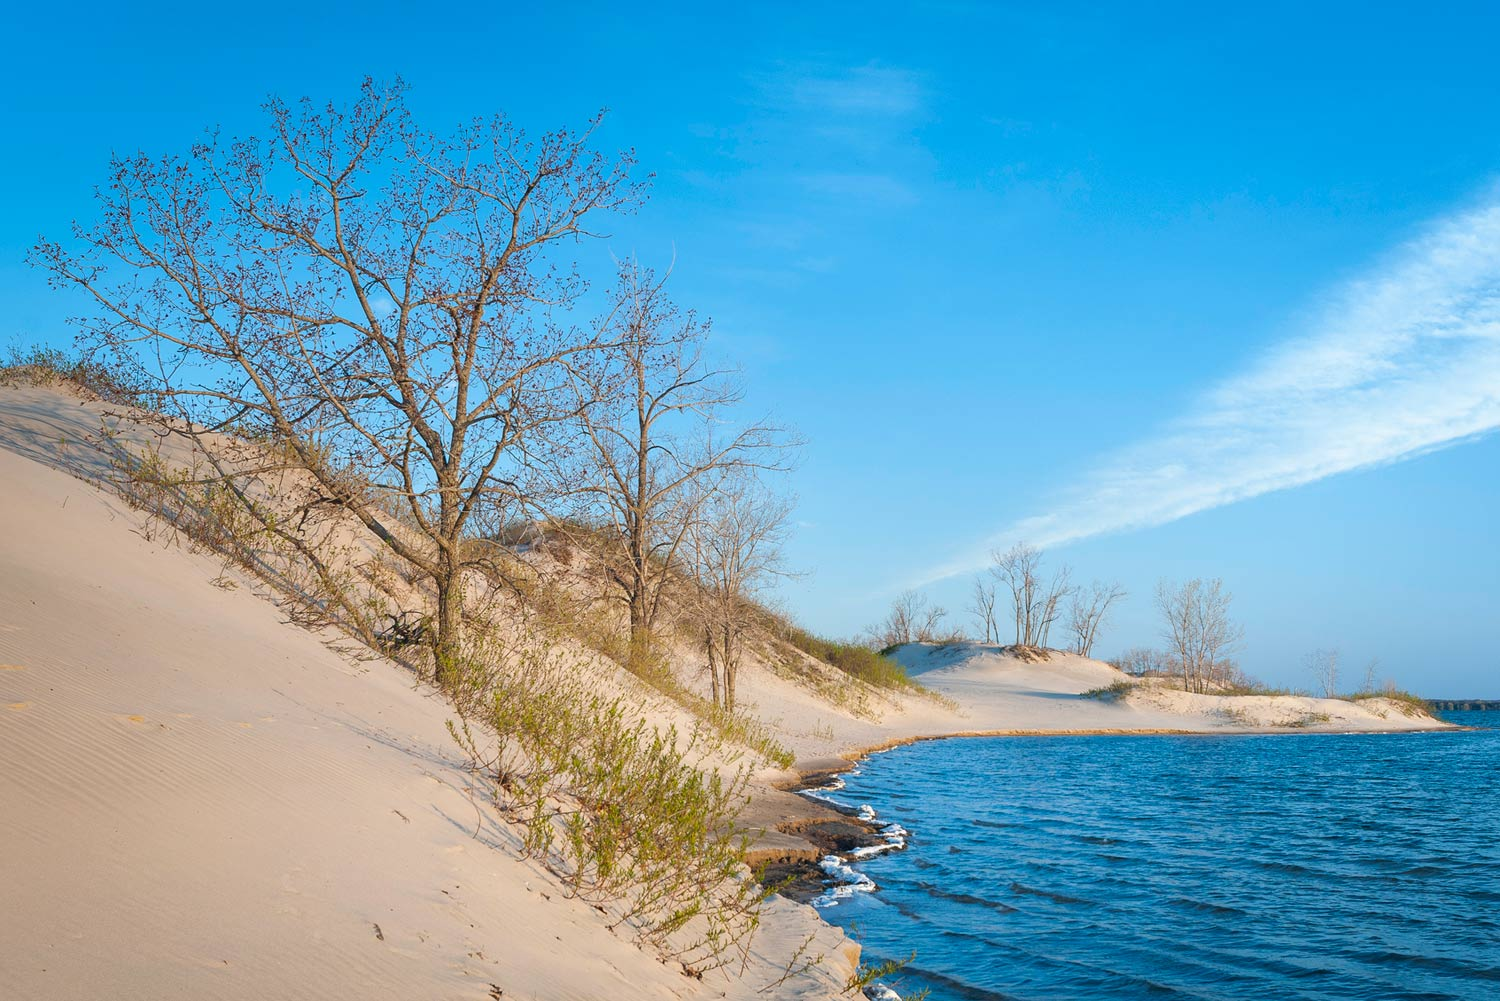 Canadas Best Beaches No Its Not All Ice And Snow A Few Hours East Of Toronto On Lake Ontario Are The Pretty Dunes Of Sandbanks Park Thumbnail